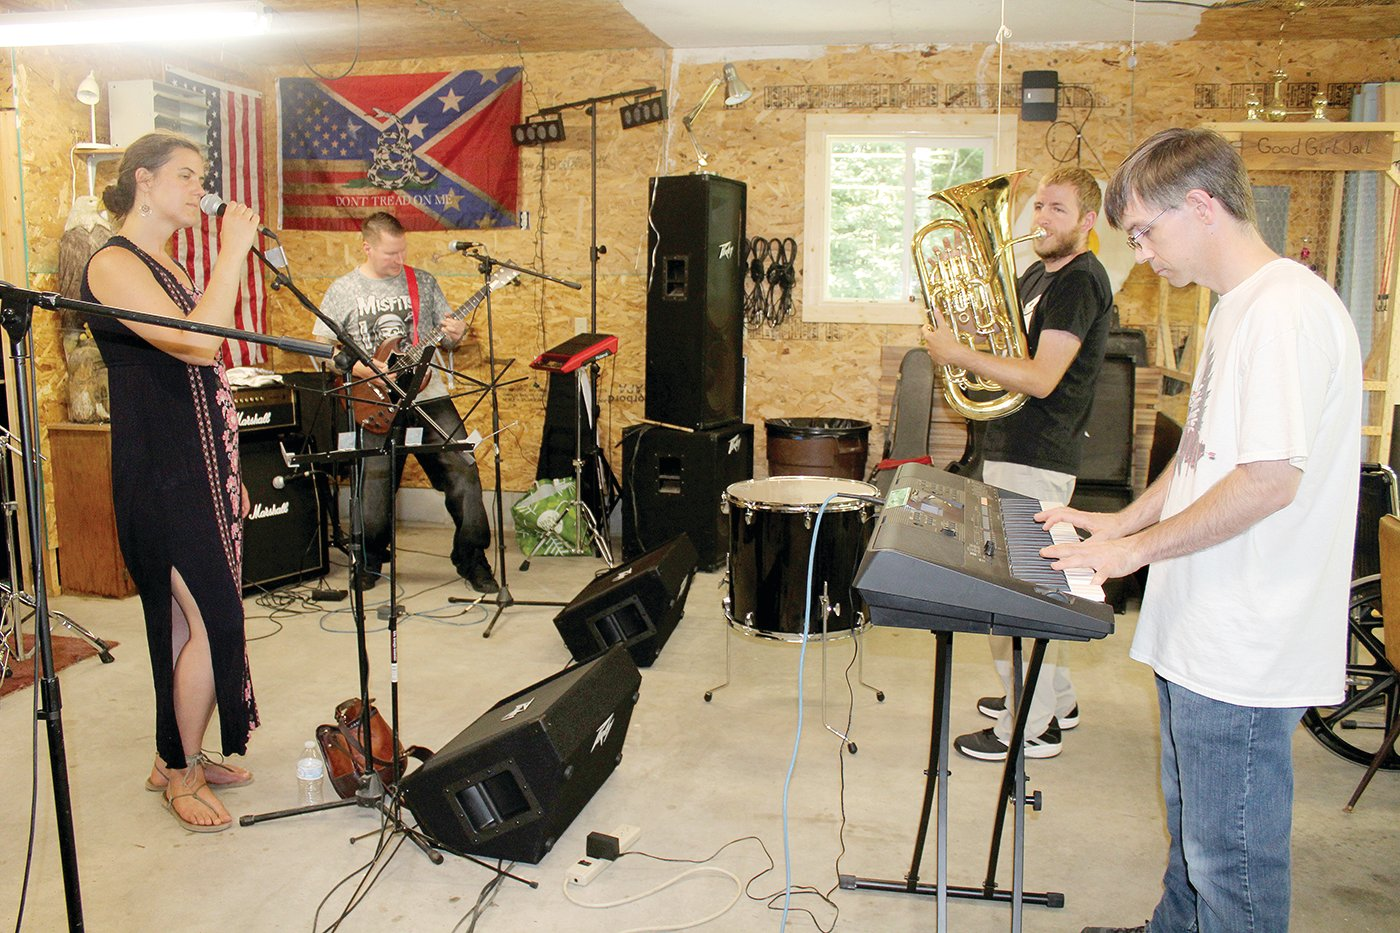 Becky Frichek, Chaz Wagner, Alex Mahne and Tony Parson rehearse for Wild Waters Music Fest. The festival takes place in Duluth on Aug. 16.